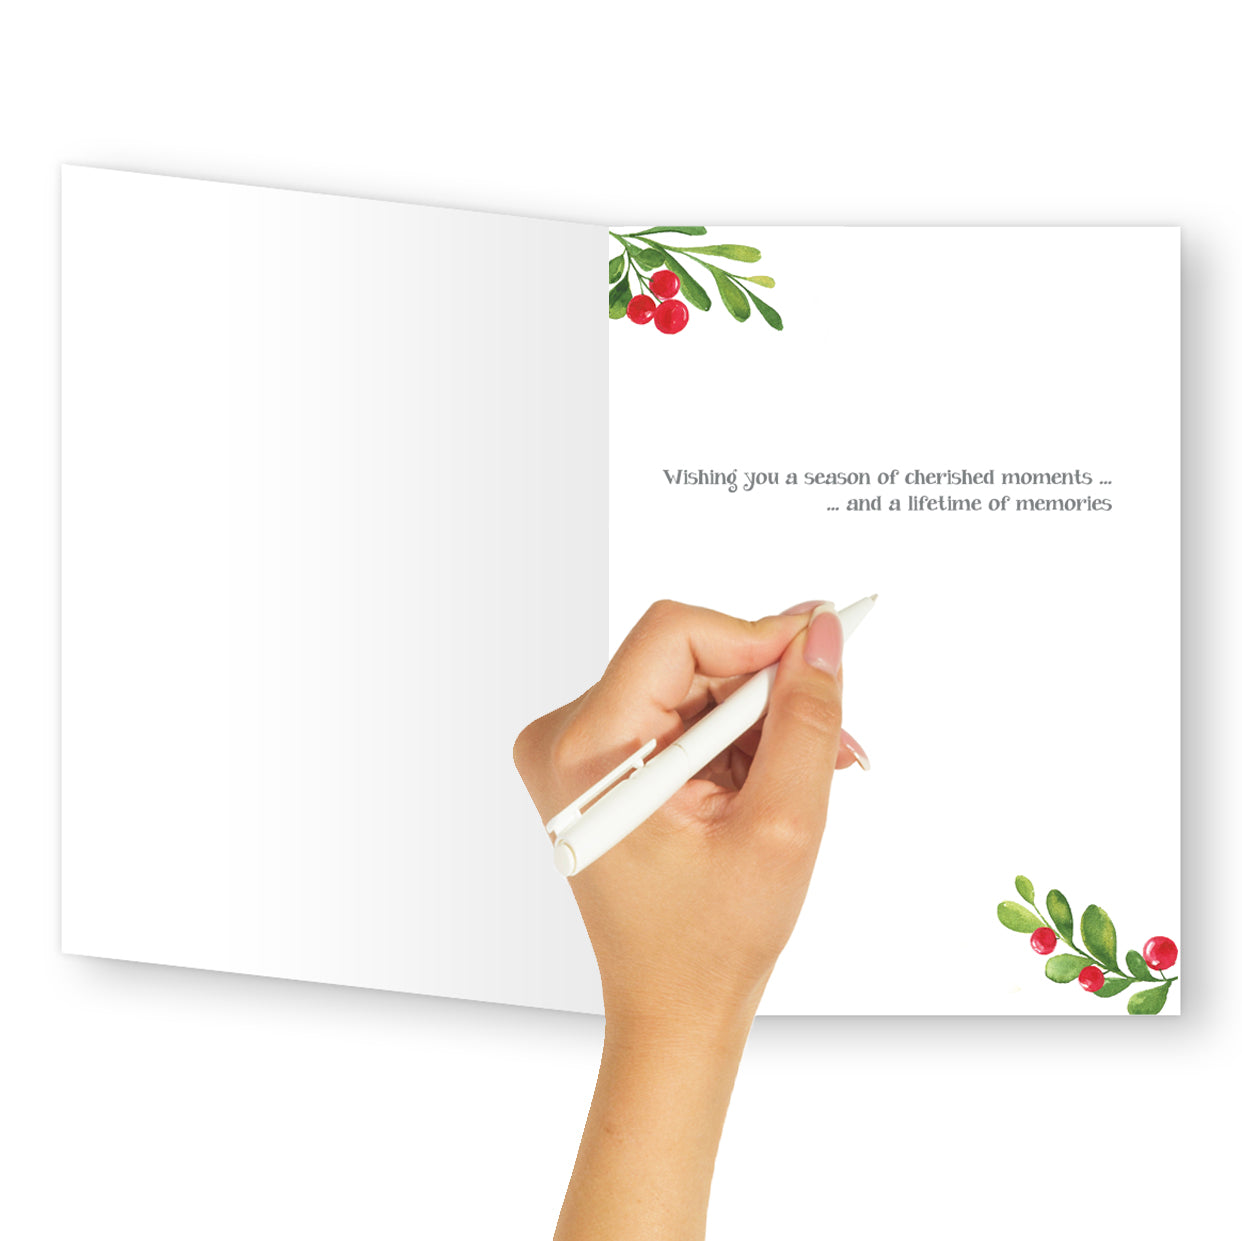 'Happy Holidays' Christmas Card - Northern Cards inside